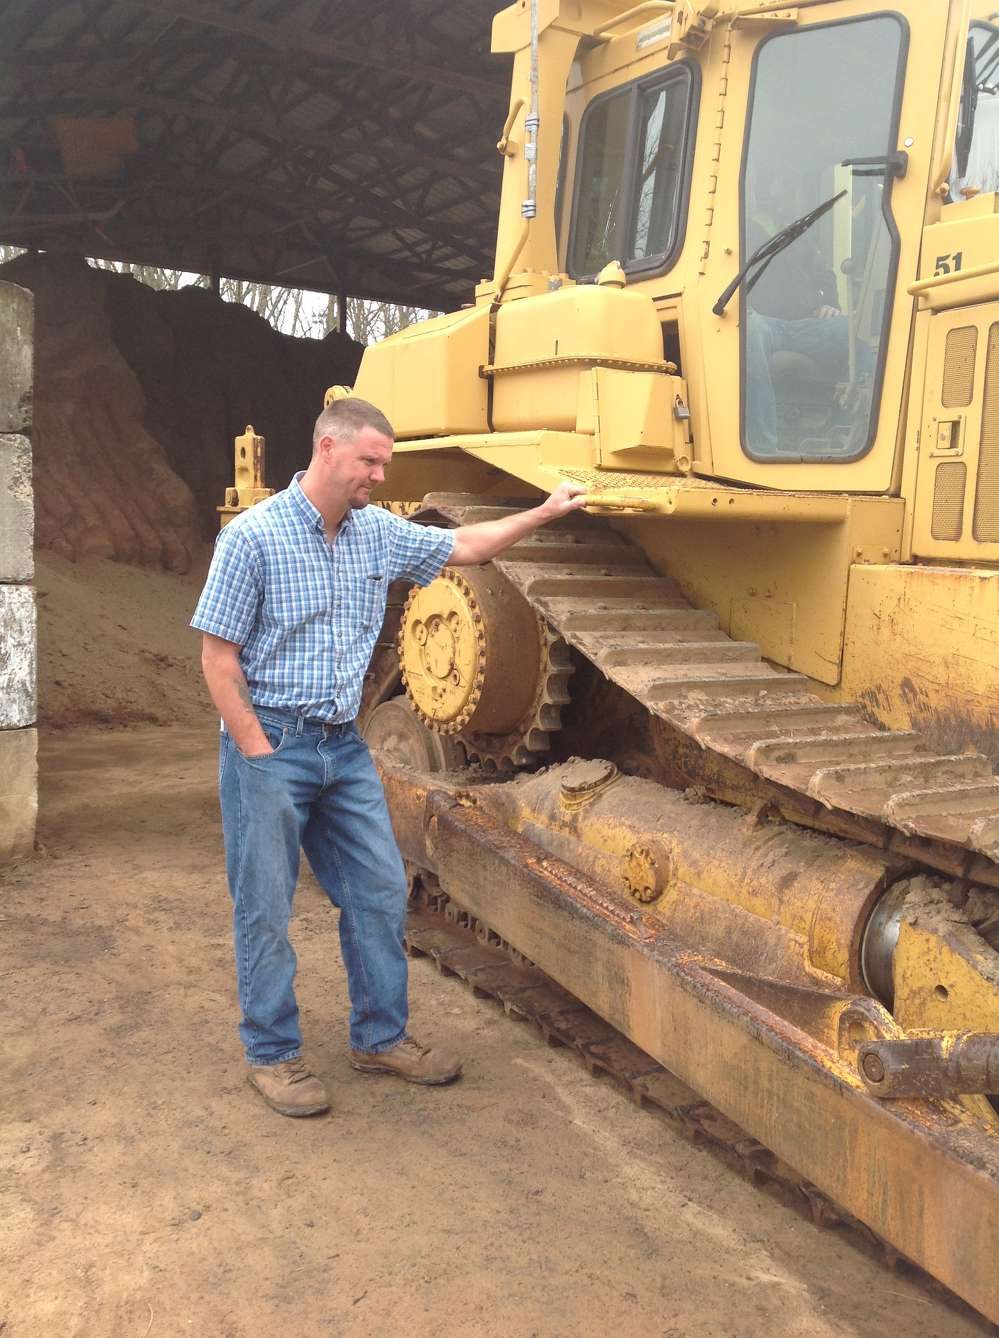 Brian Oster, Garden State Services LLC, Florence, N.J., said that his company specializes in heavy hauling, and he was interested in a variety of equipment, including this Cat dozer.